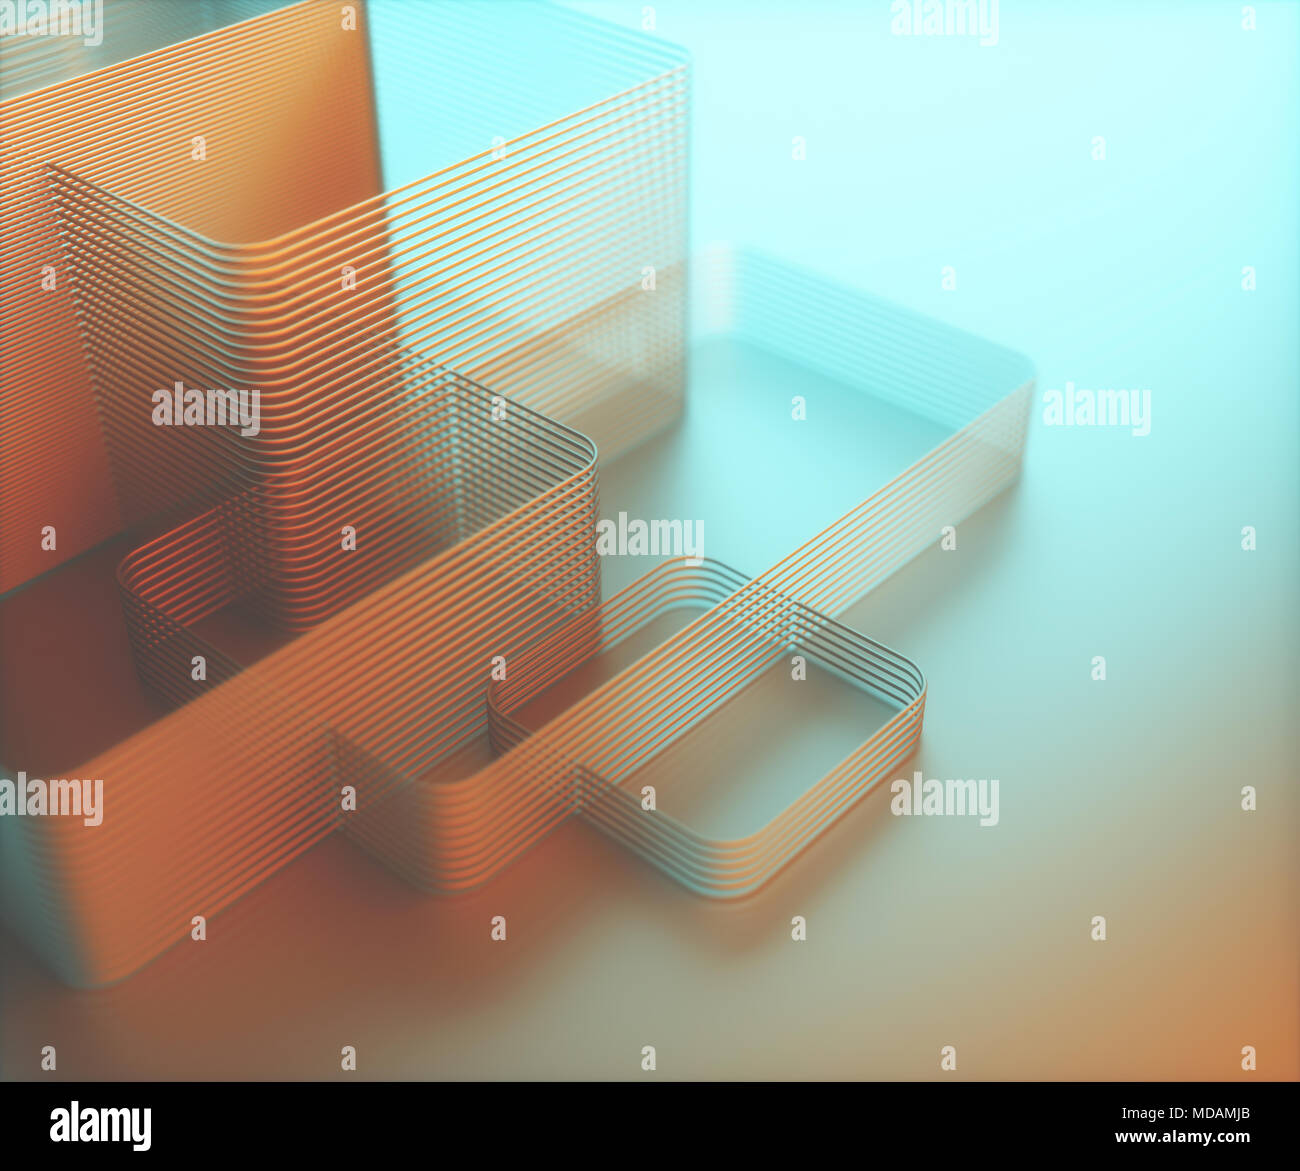 3D illustration. Artistic abstract tubular structure. Image with light and colorful shadow in blue and orange. - Stock Image